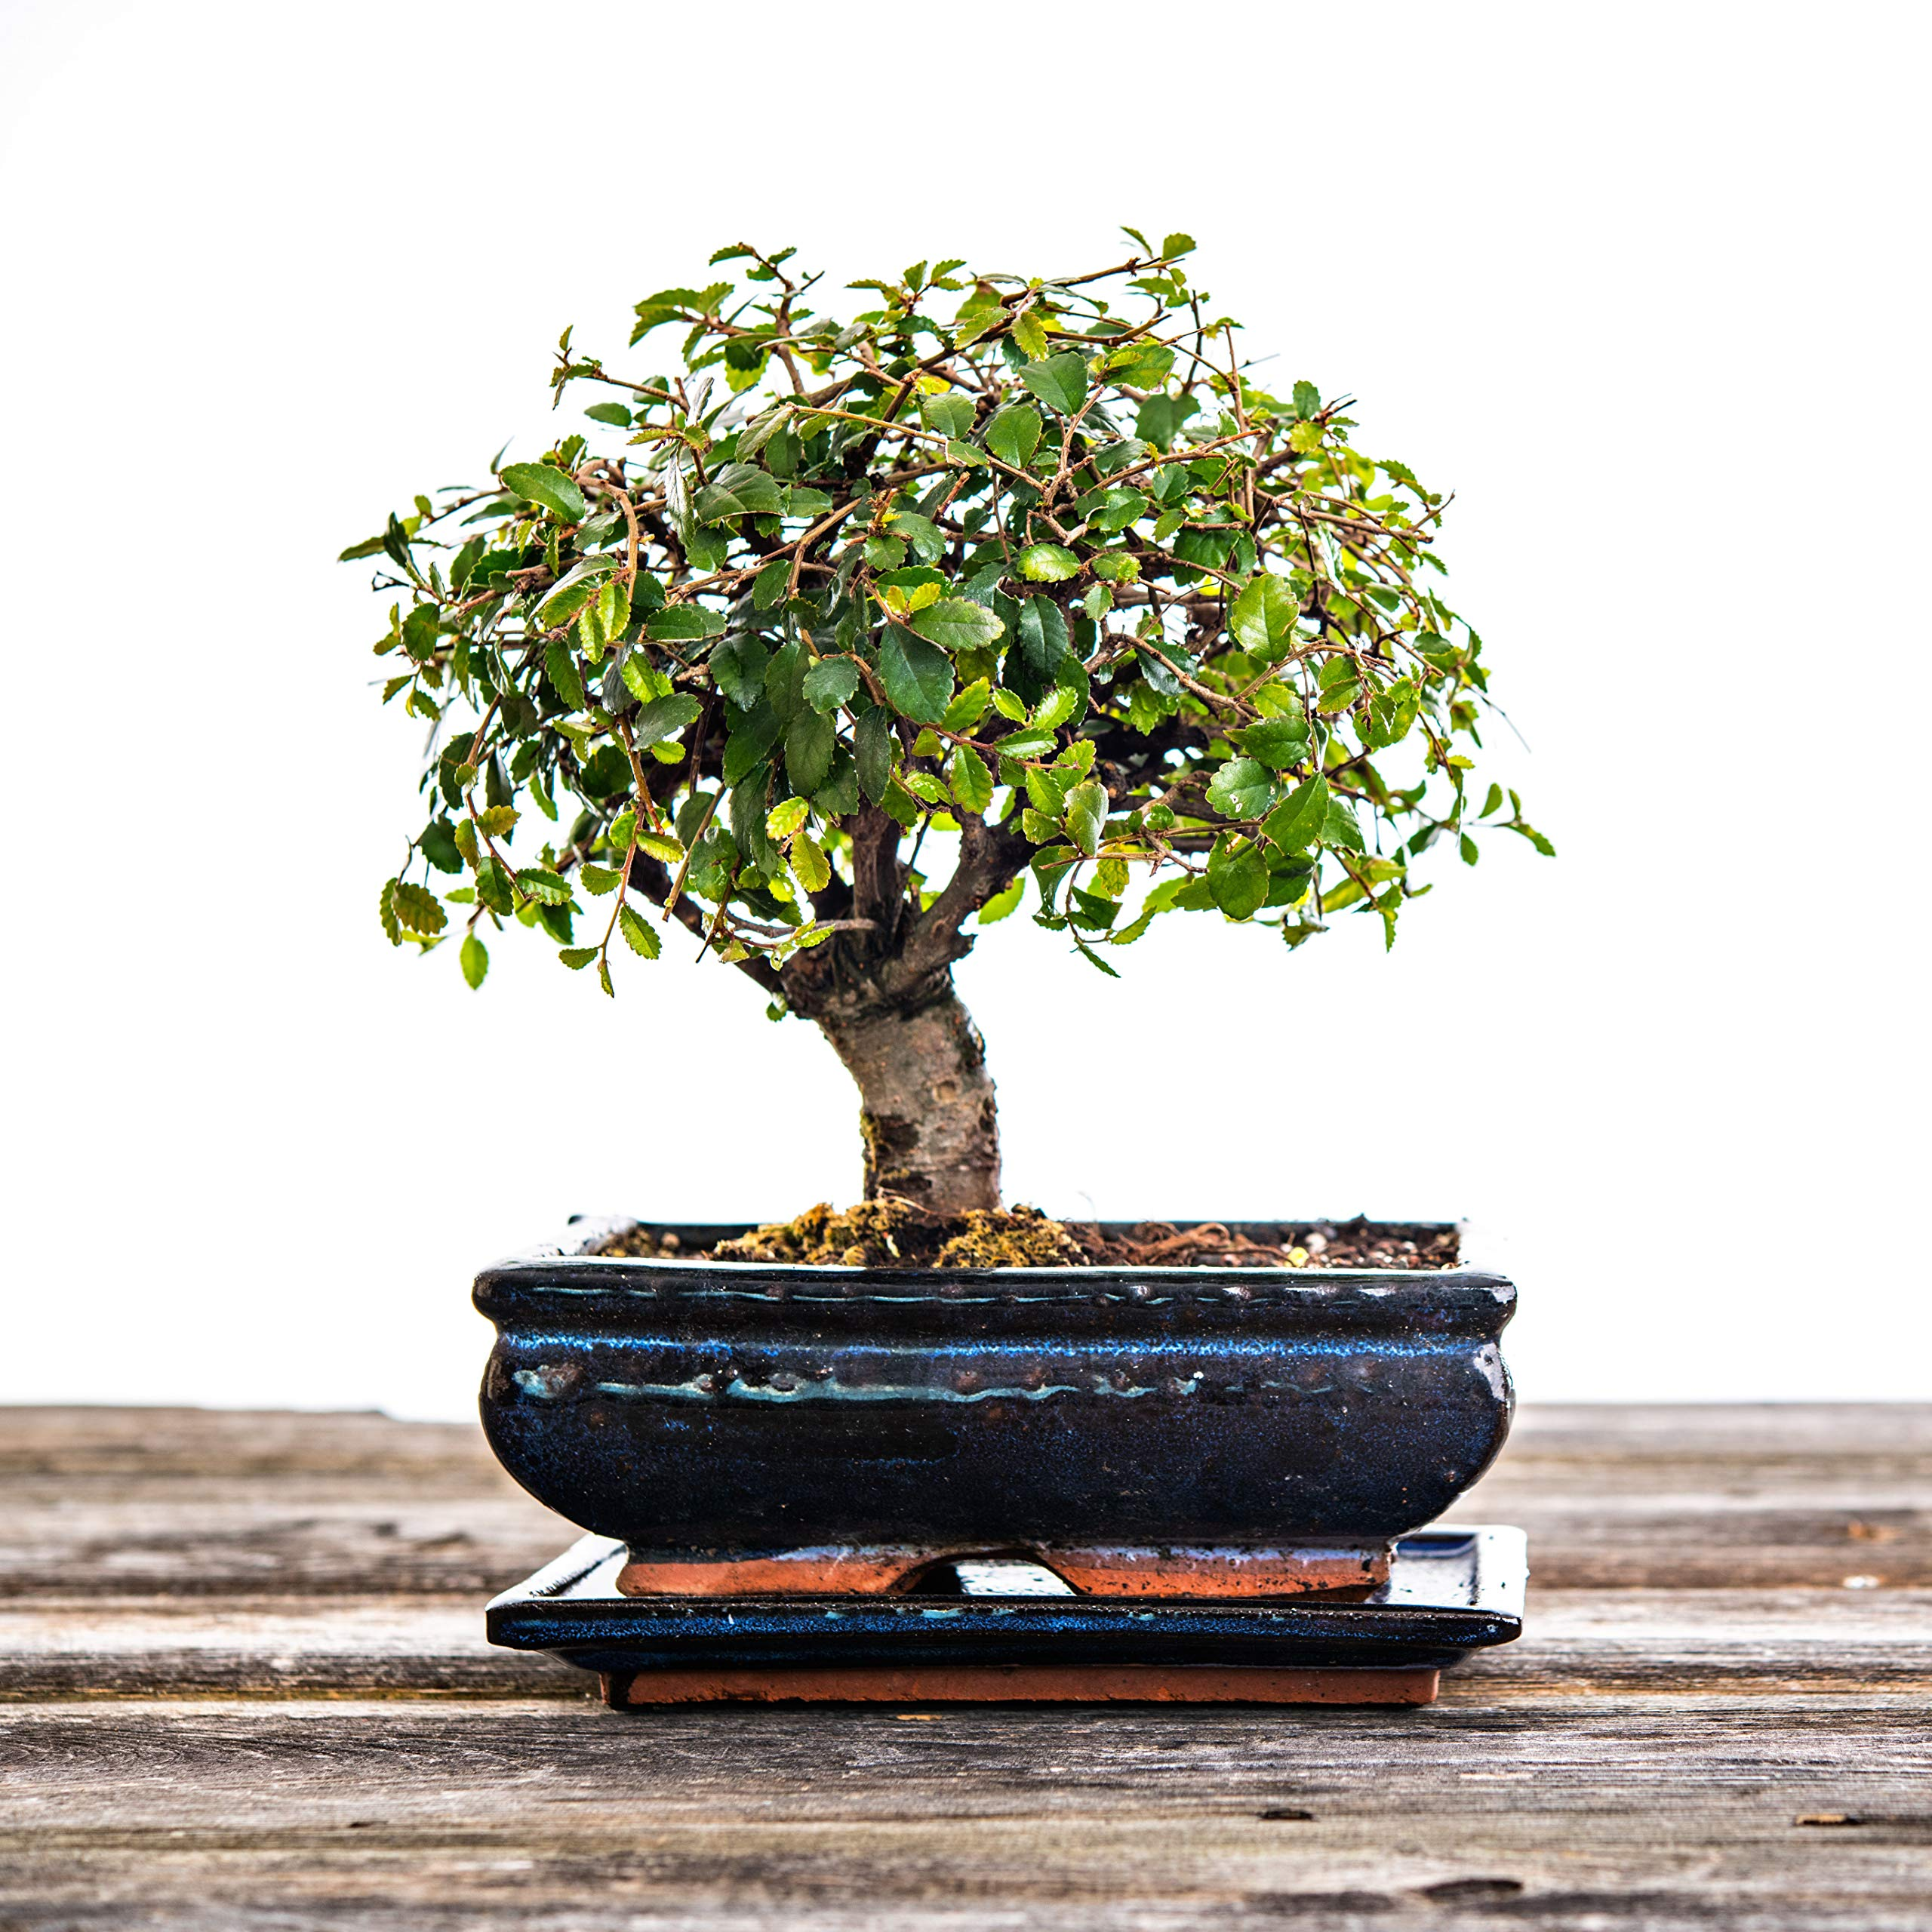 Chinese Elm Bonsai Tree 5 6 Years Old 20 25cm Trees Buy Online In India At Desertcart In Productid 81480302